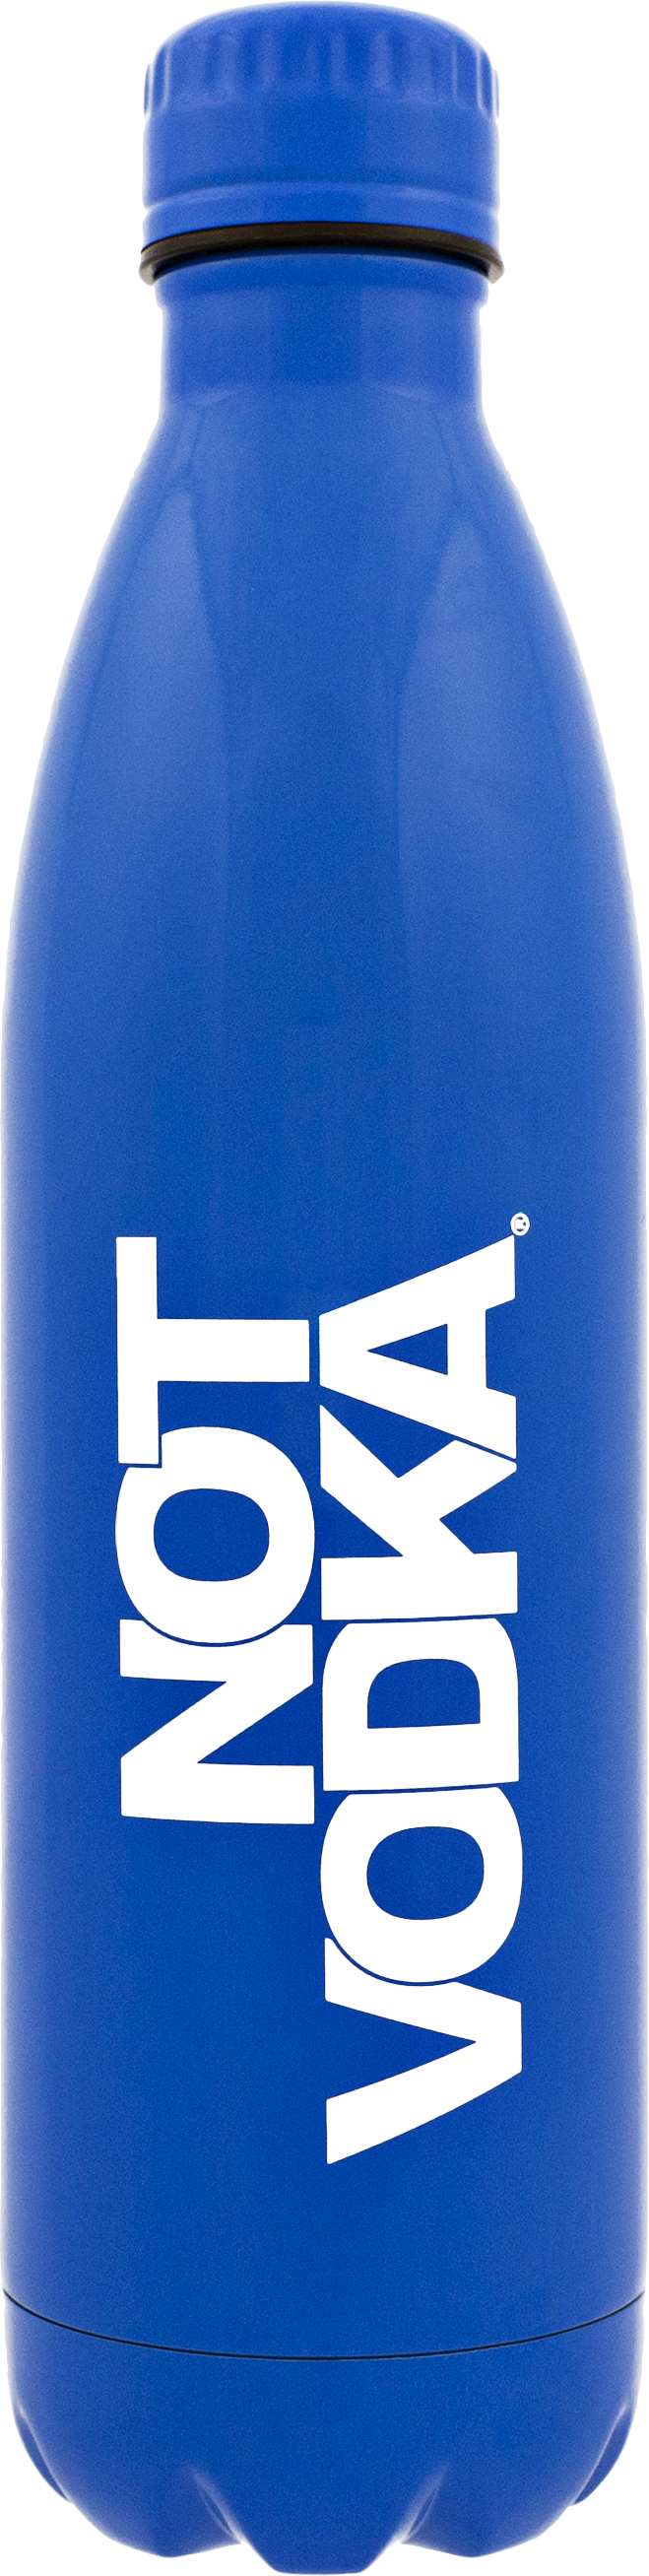 Signature Series Insulated Water Bottle Glossy Blue, PACKAGE 1Ct